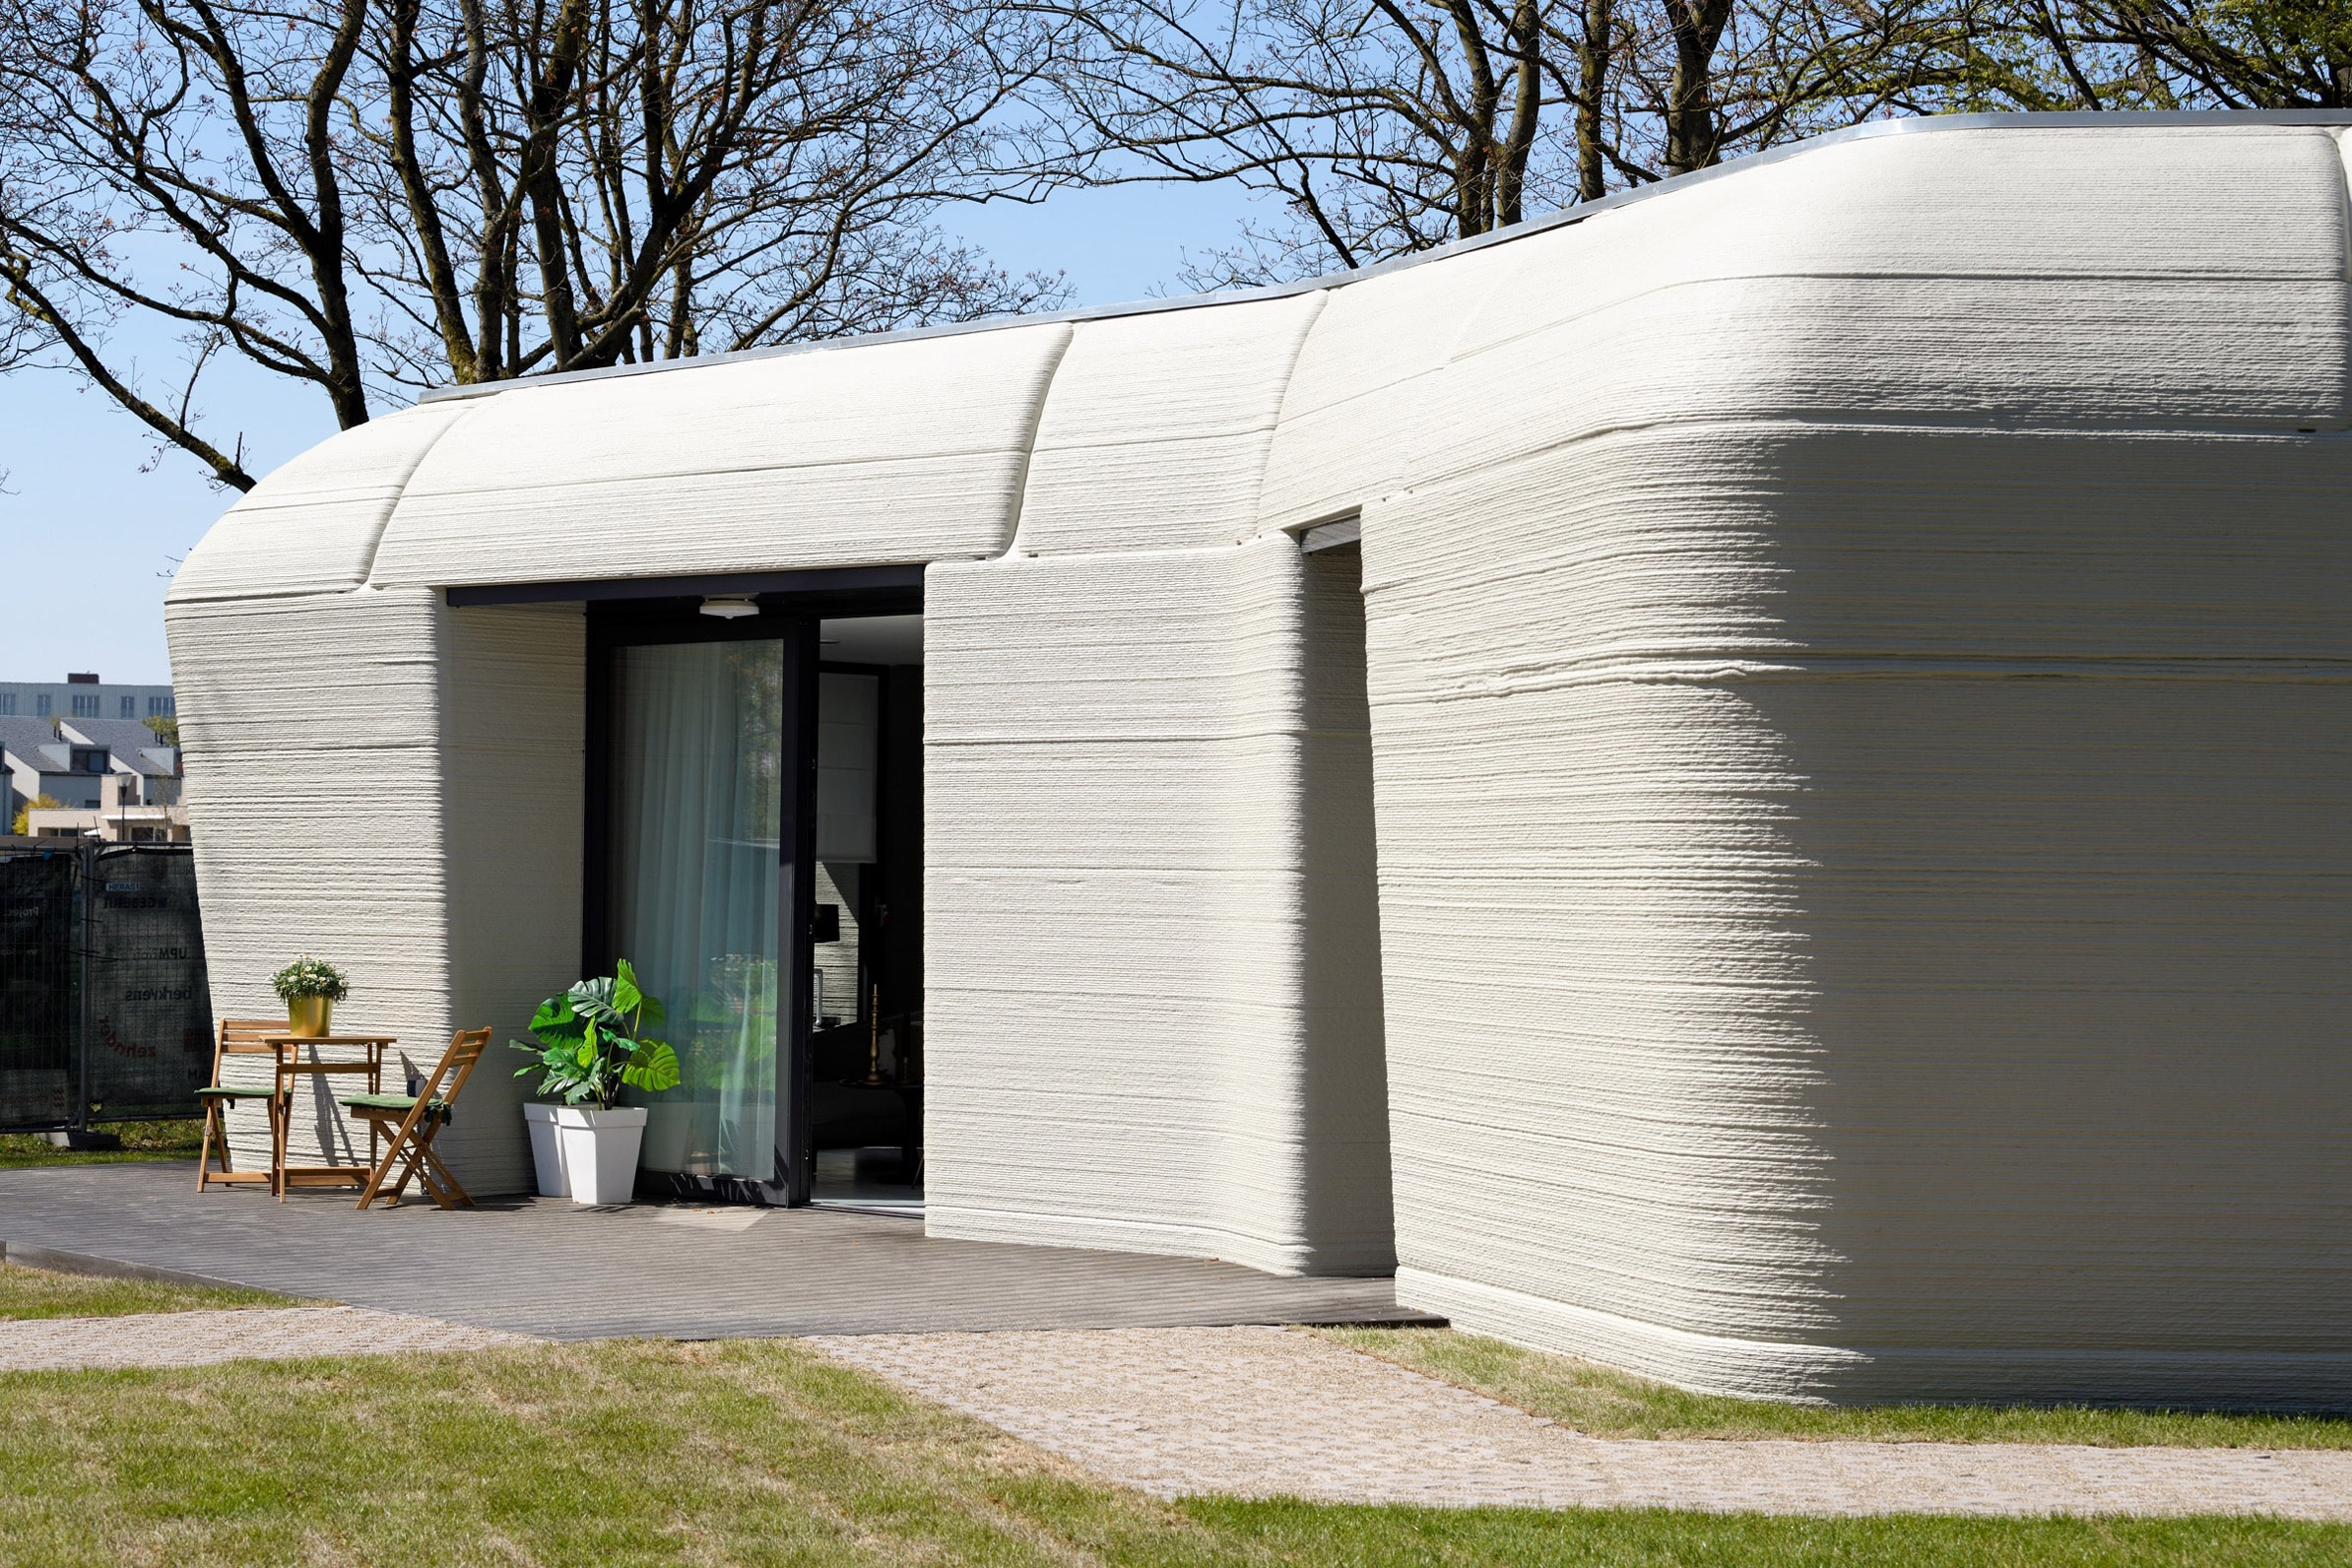 The Project Milestone home was printed using concrete